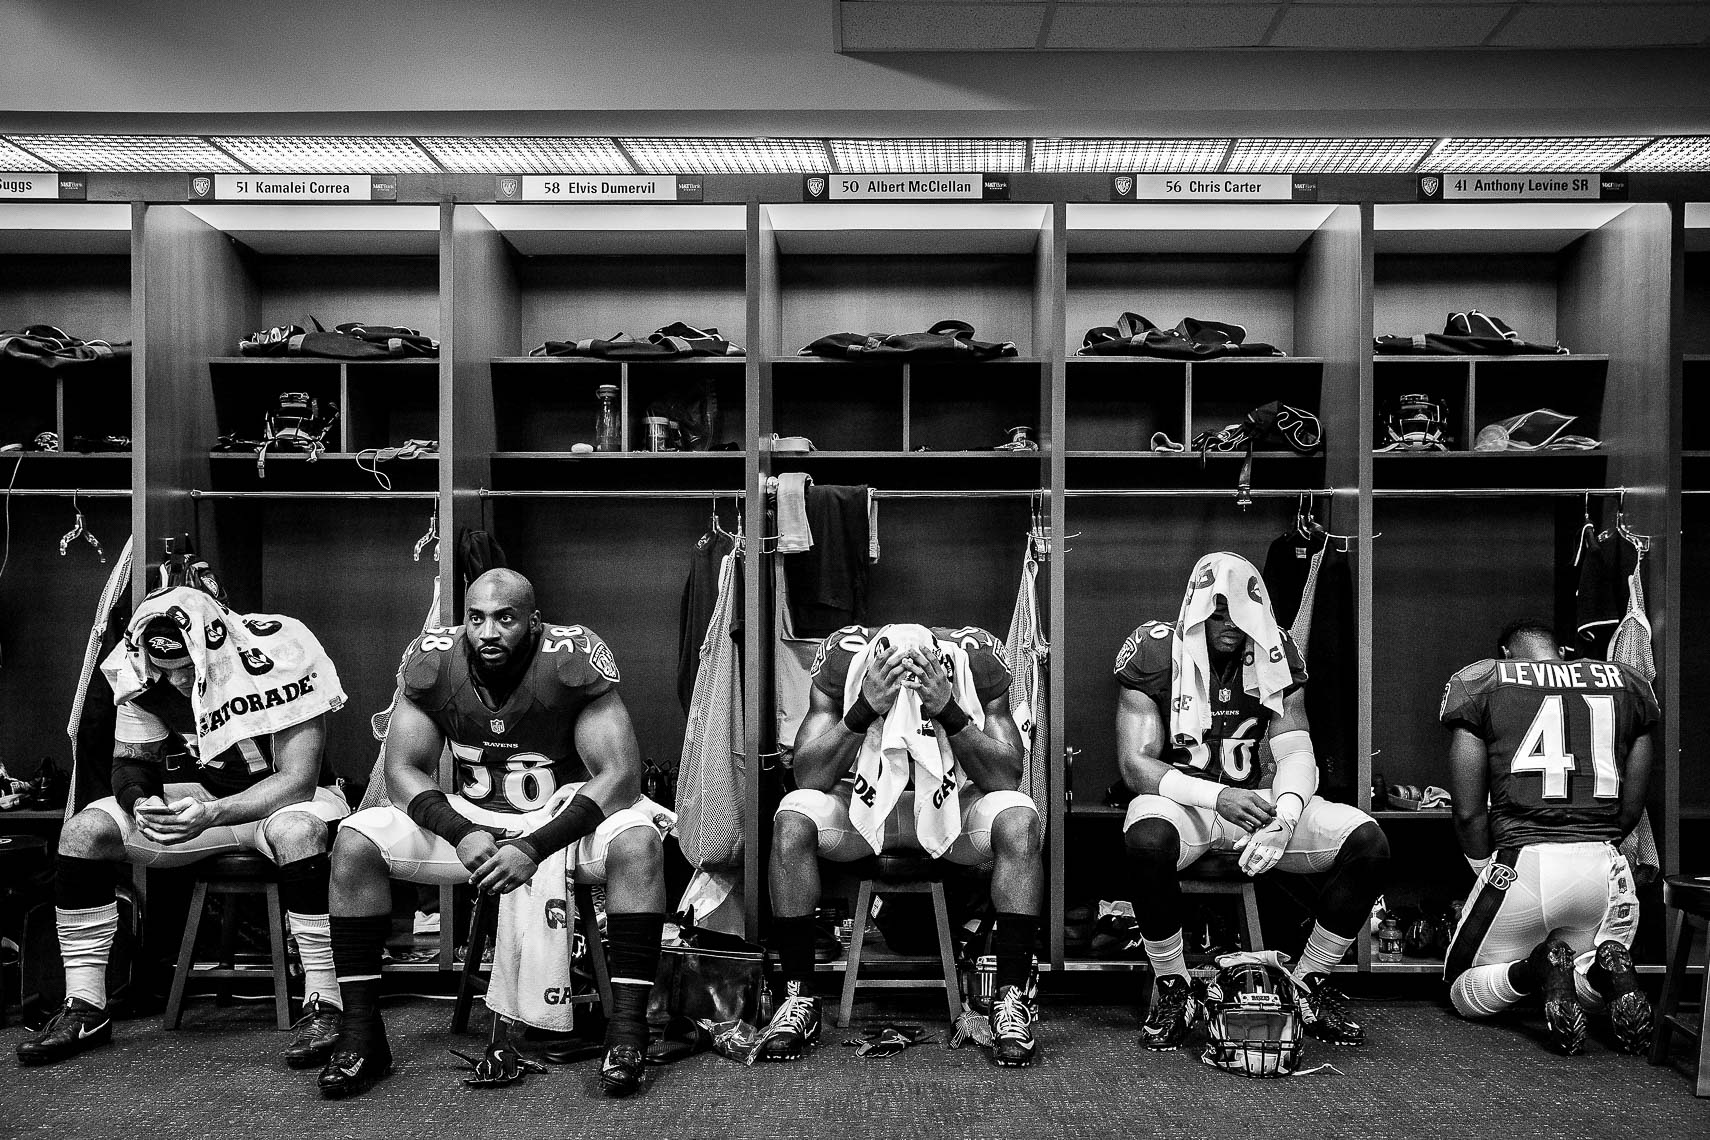 ravens01 NFL Baltimore Ravens photos of inside an NFL locker room behind the scenes NFL team photographer documentary sports photographer